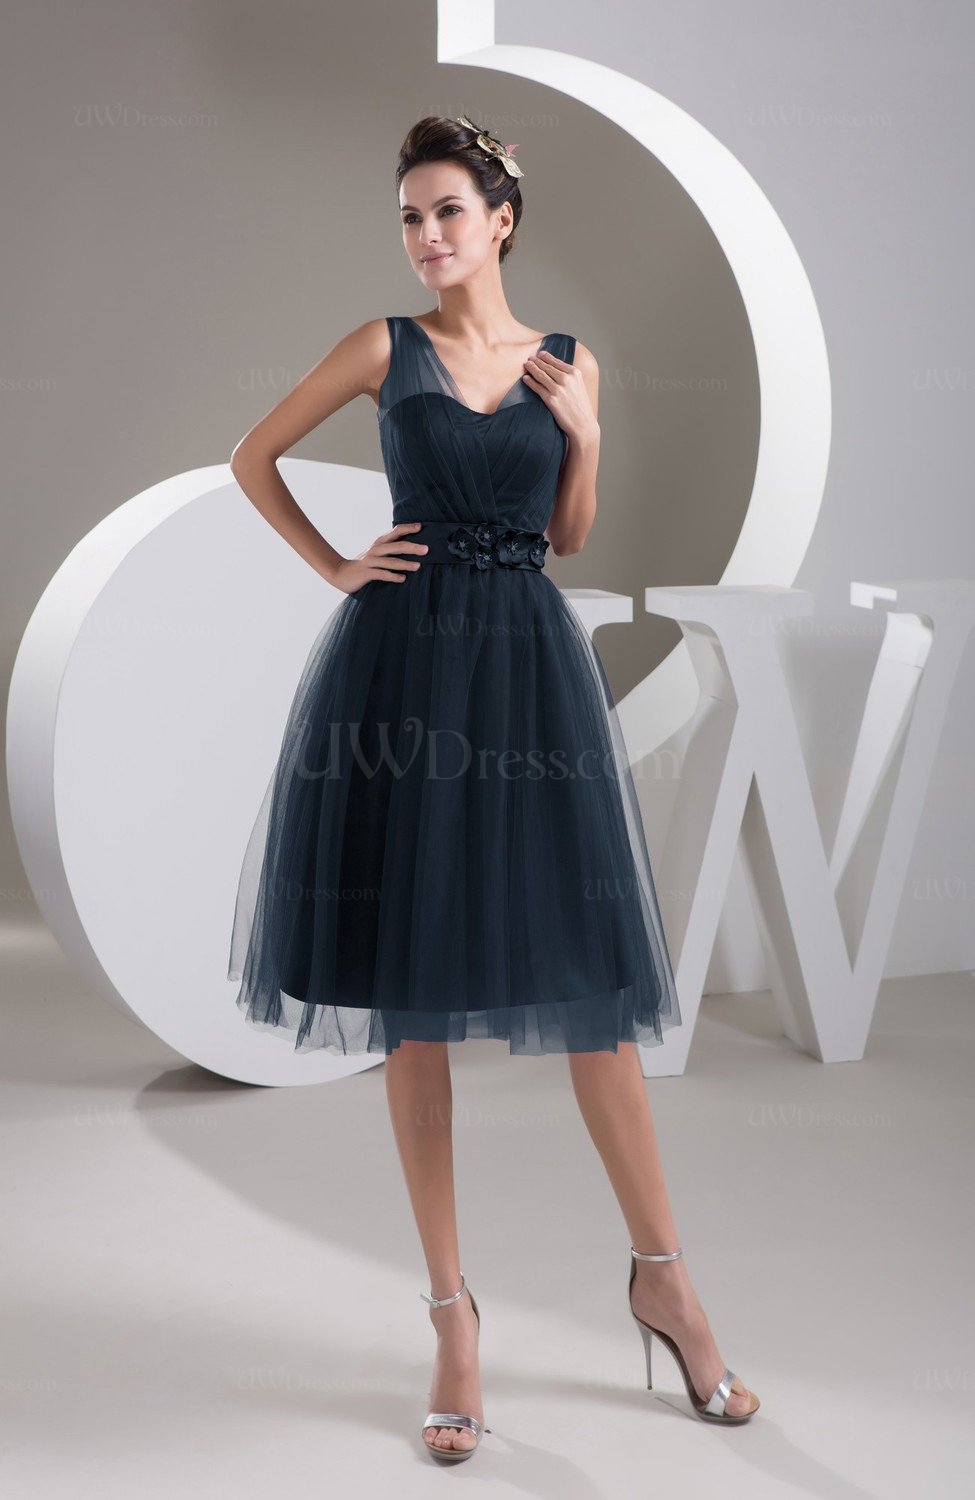 Navy Blue Inexpensive Bridesmaid Dress Short Sheer Knee Length Informal Elegant